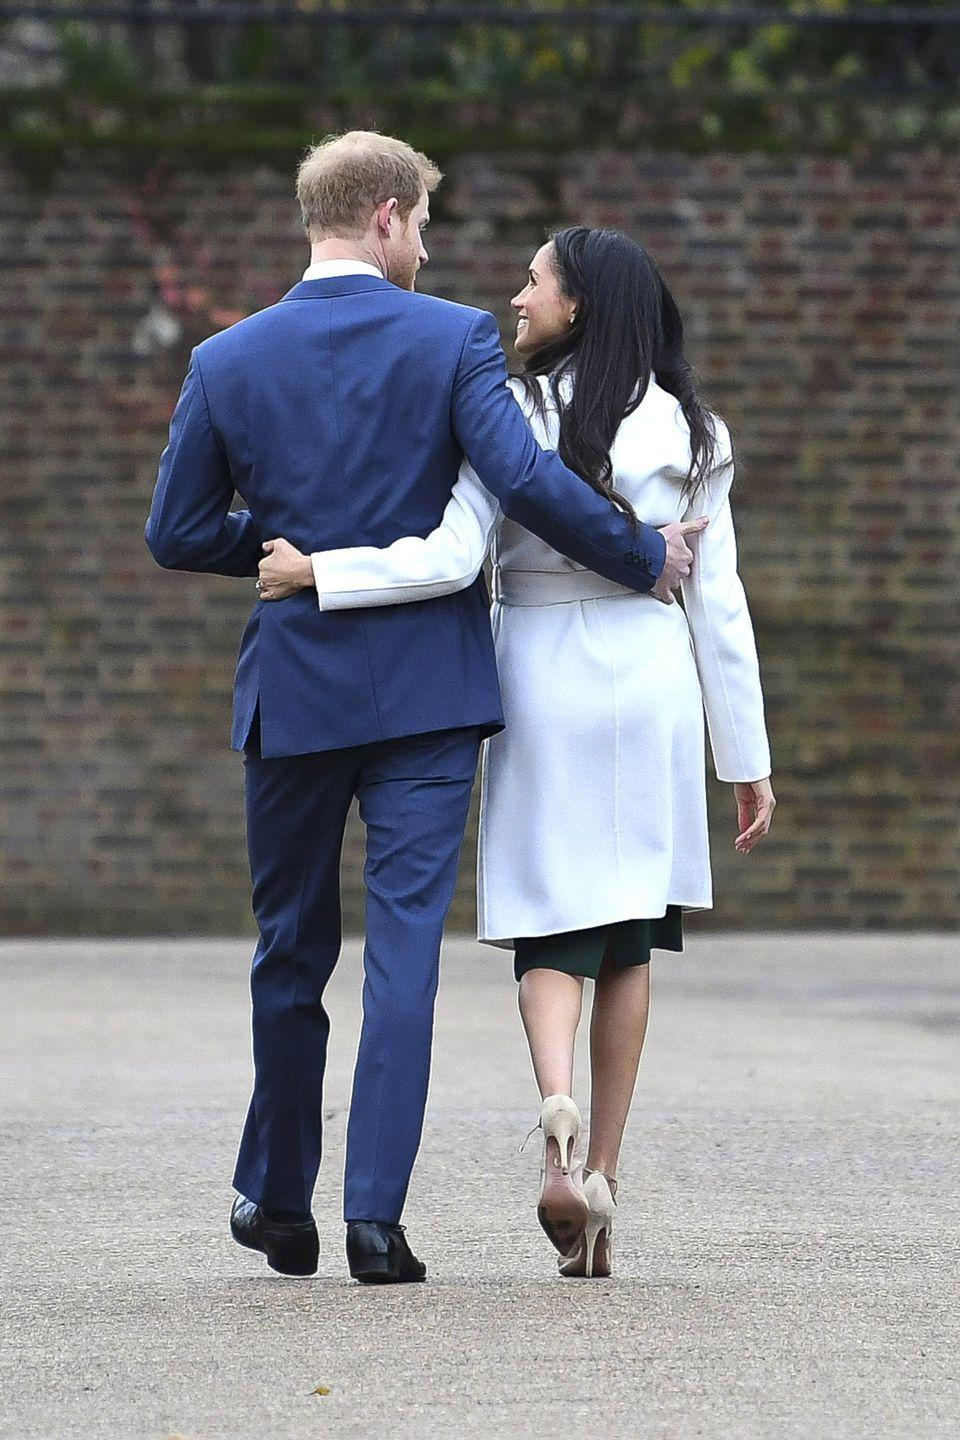 <p>Also on the happy engagement announcement afternoon, the couple shared a little PDA, wrapping their arms closely around each other as they strolled through the garden.</p>